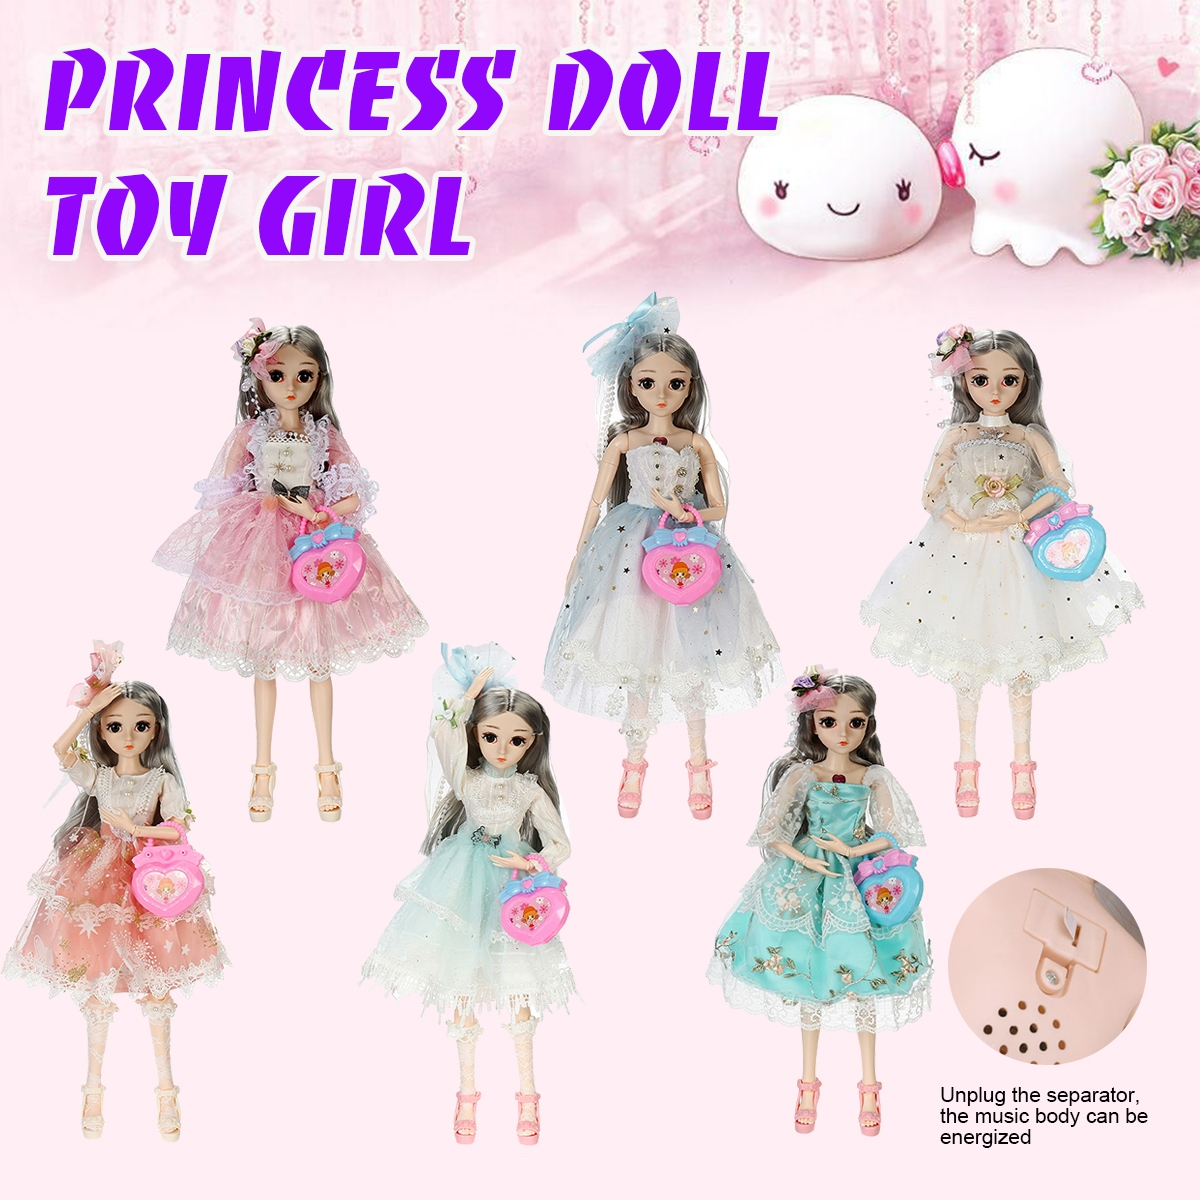 26 Joints Rotatable Princess Doll Action Figure Model Toy with Sound Light for Kids Gift